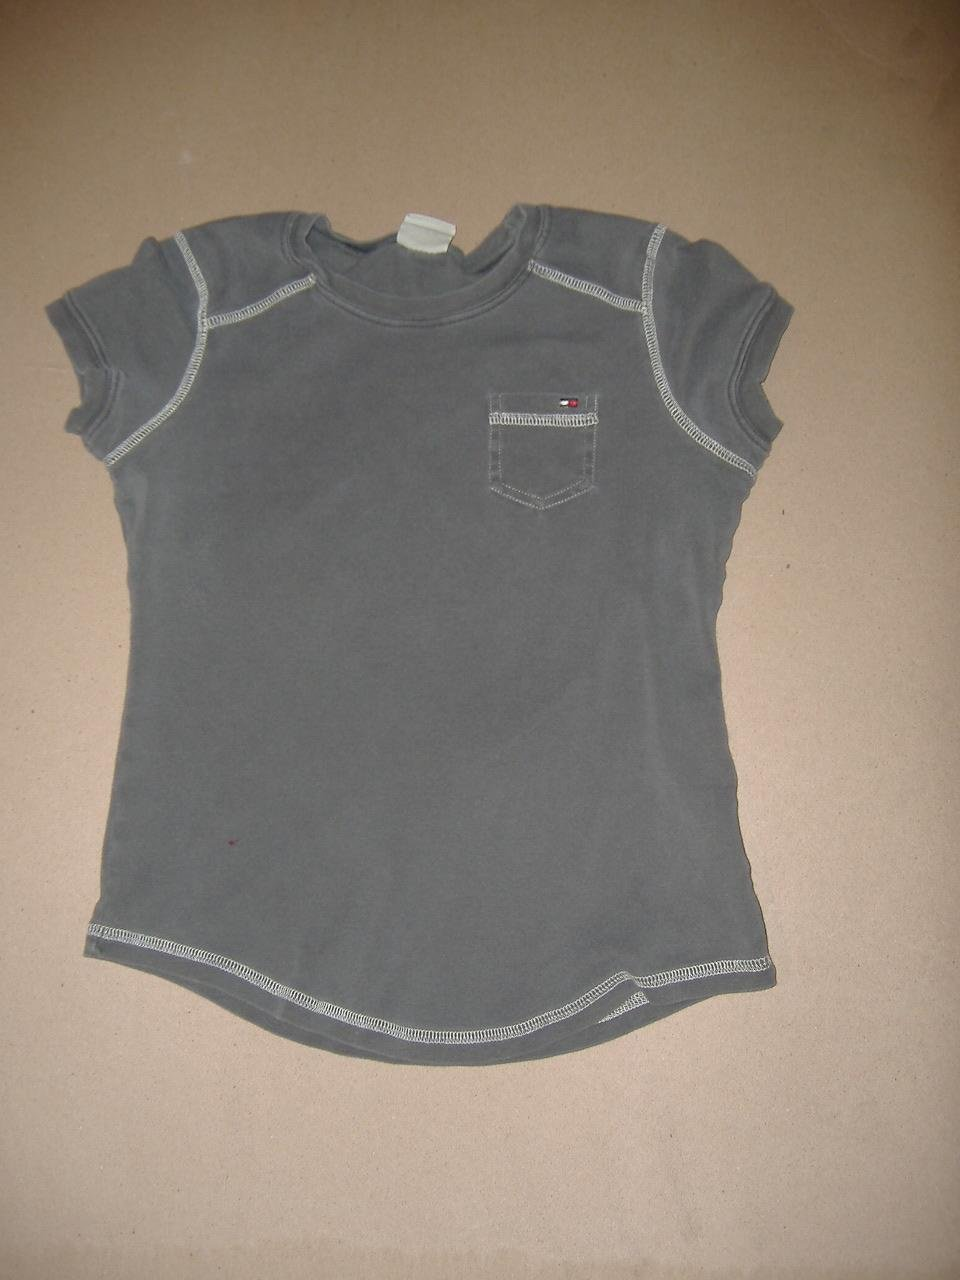 Tommy Hilfiger Girl's Top  Size L